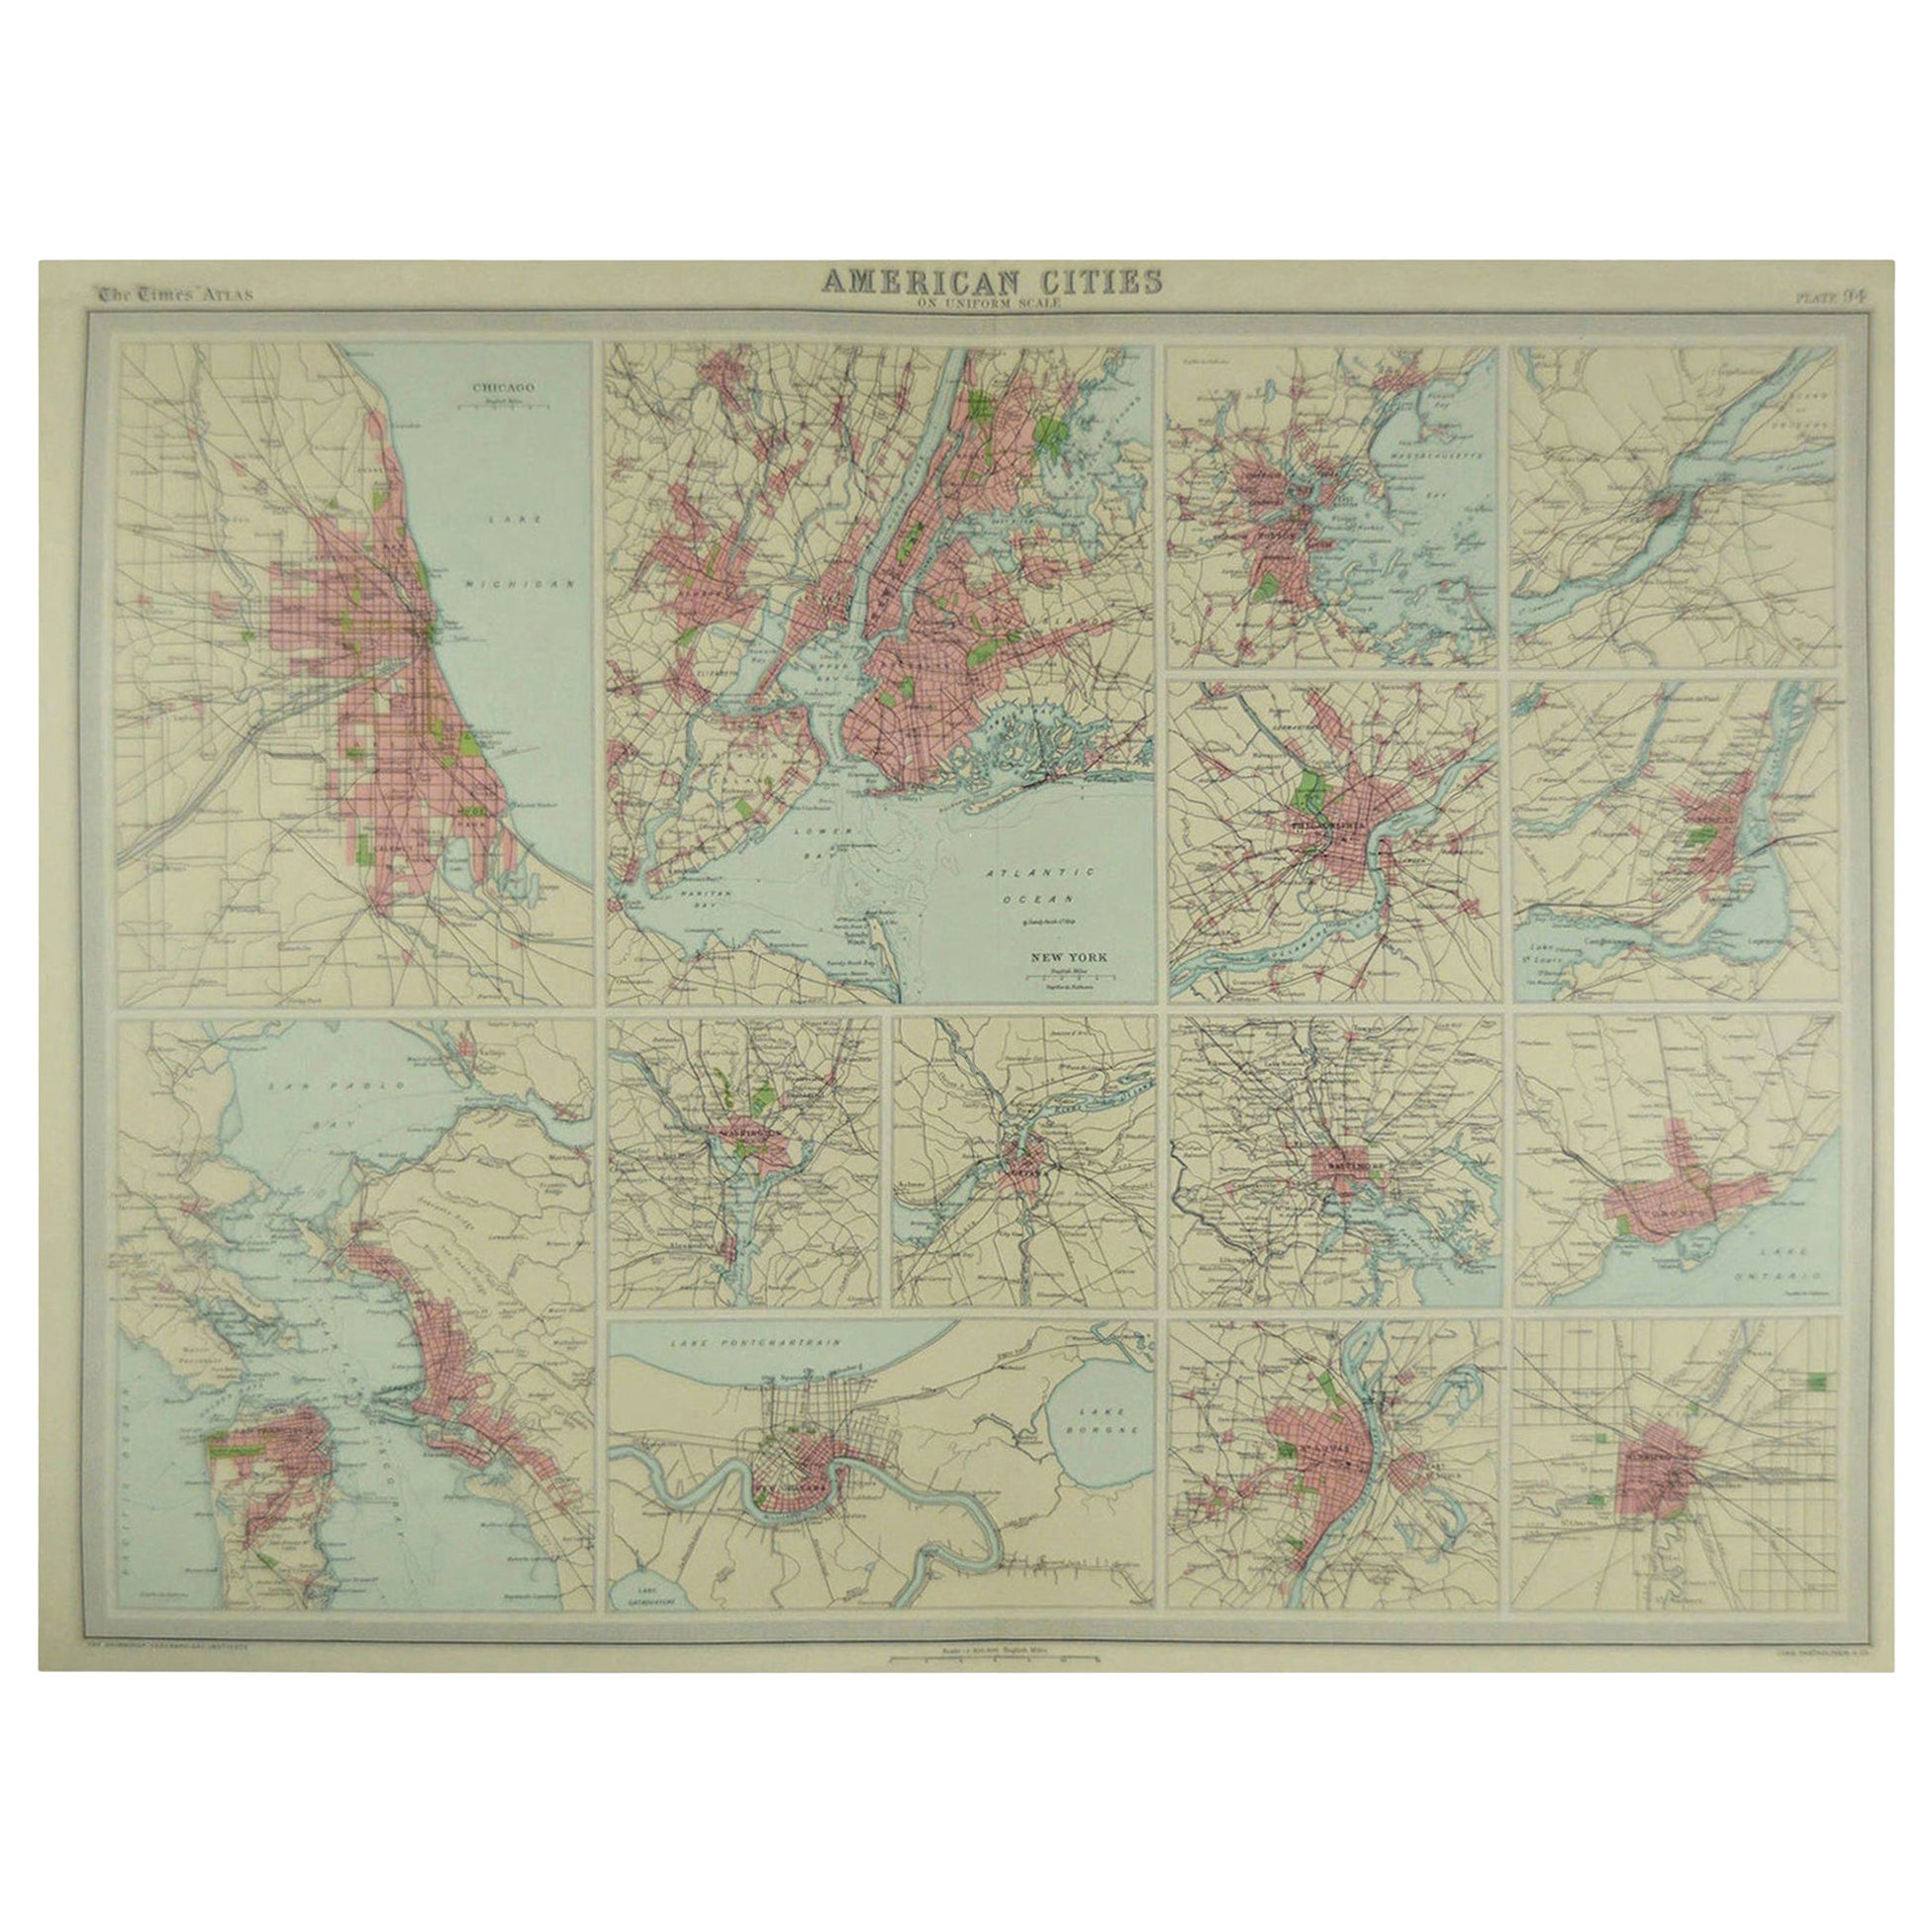 Antique Map of American Cities, Vignette of New York City, circa 1920